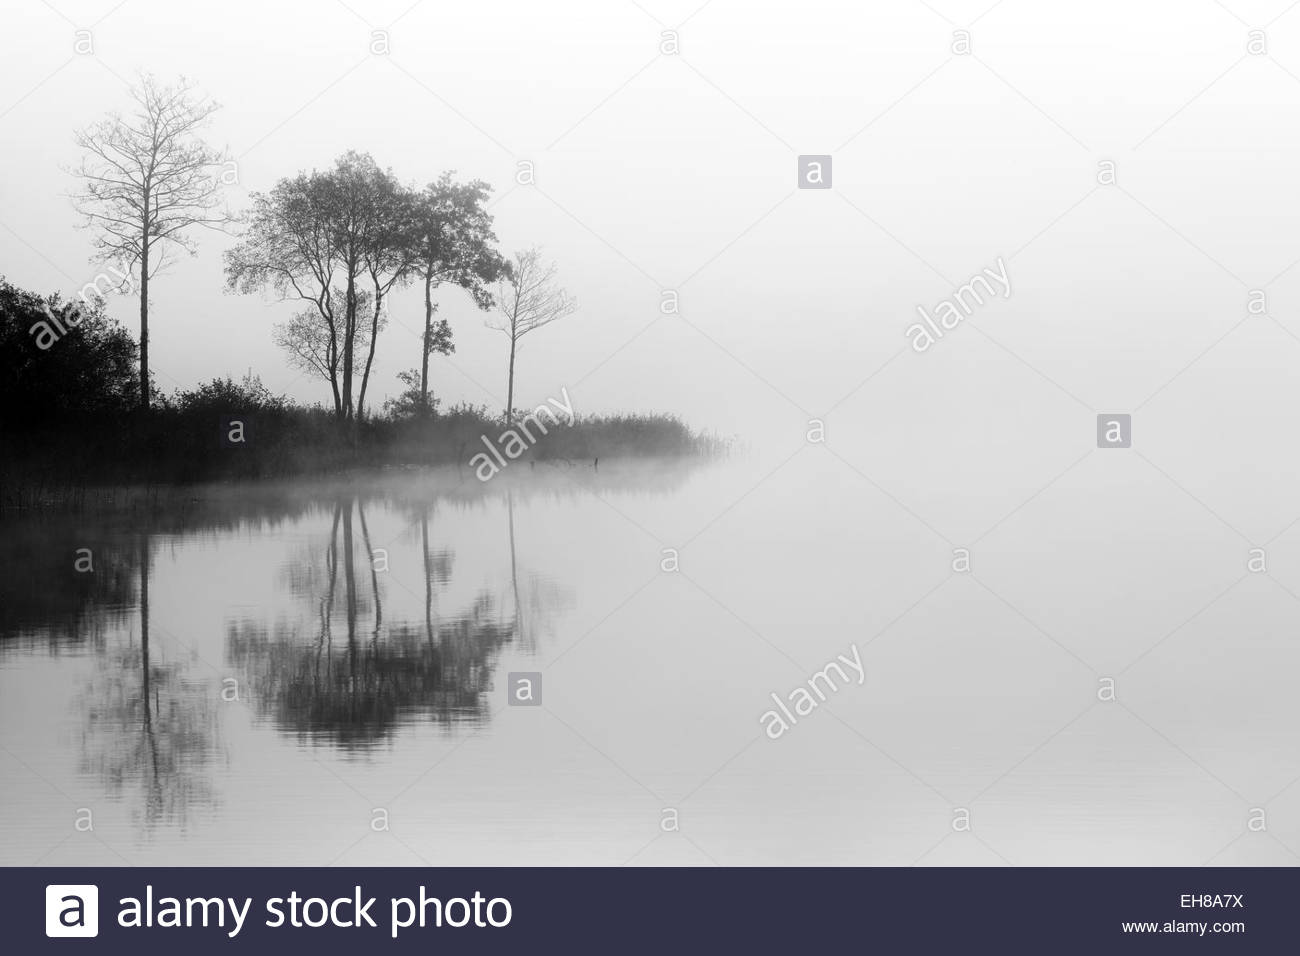 Loch Ard trees in the mist reflecting on the water. Stirlingshire, Scotland - Stock Image